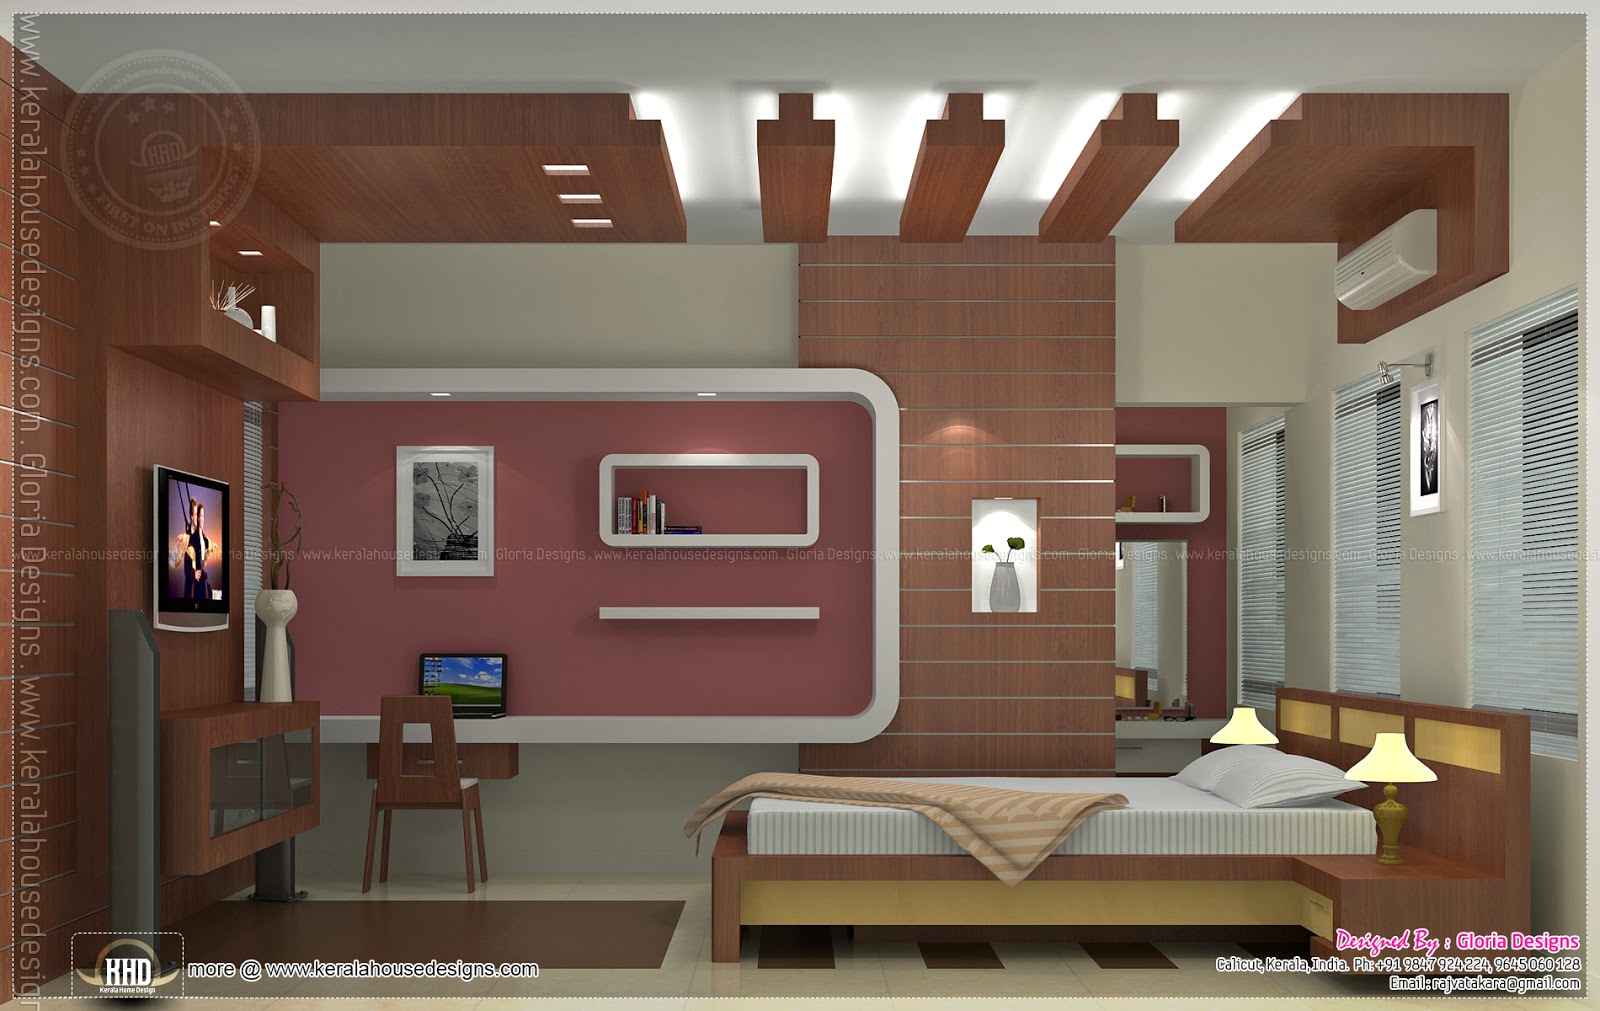 Home interior designs by gloria designs calicut kerala Low cost interior design for homes in kerala